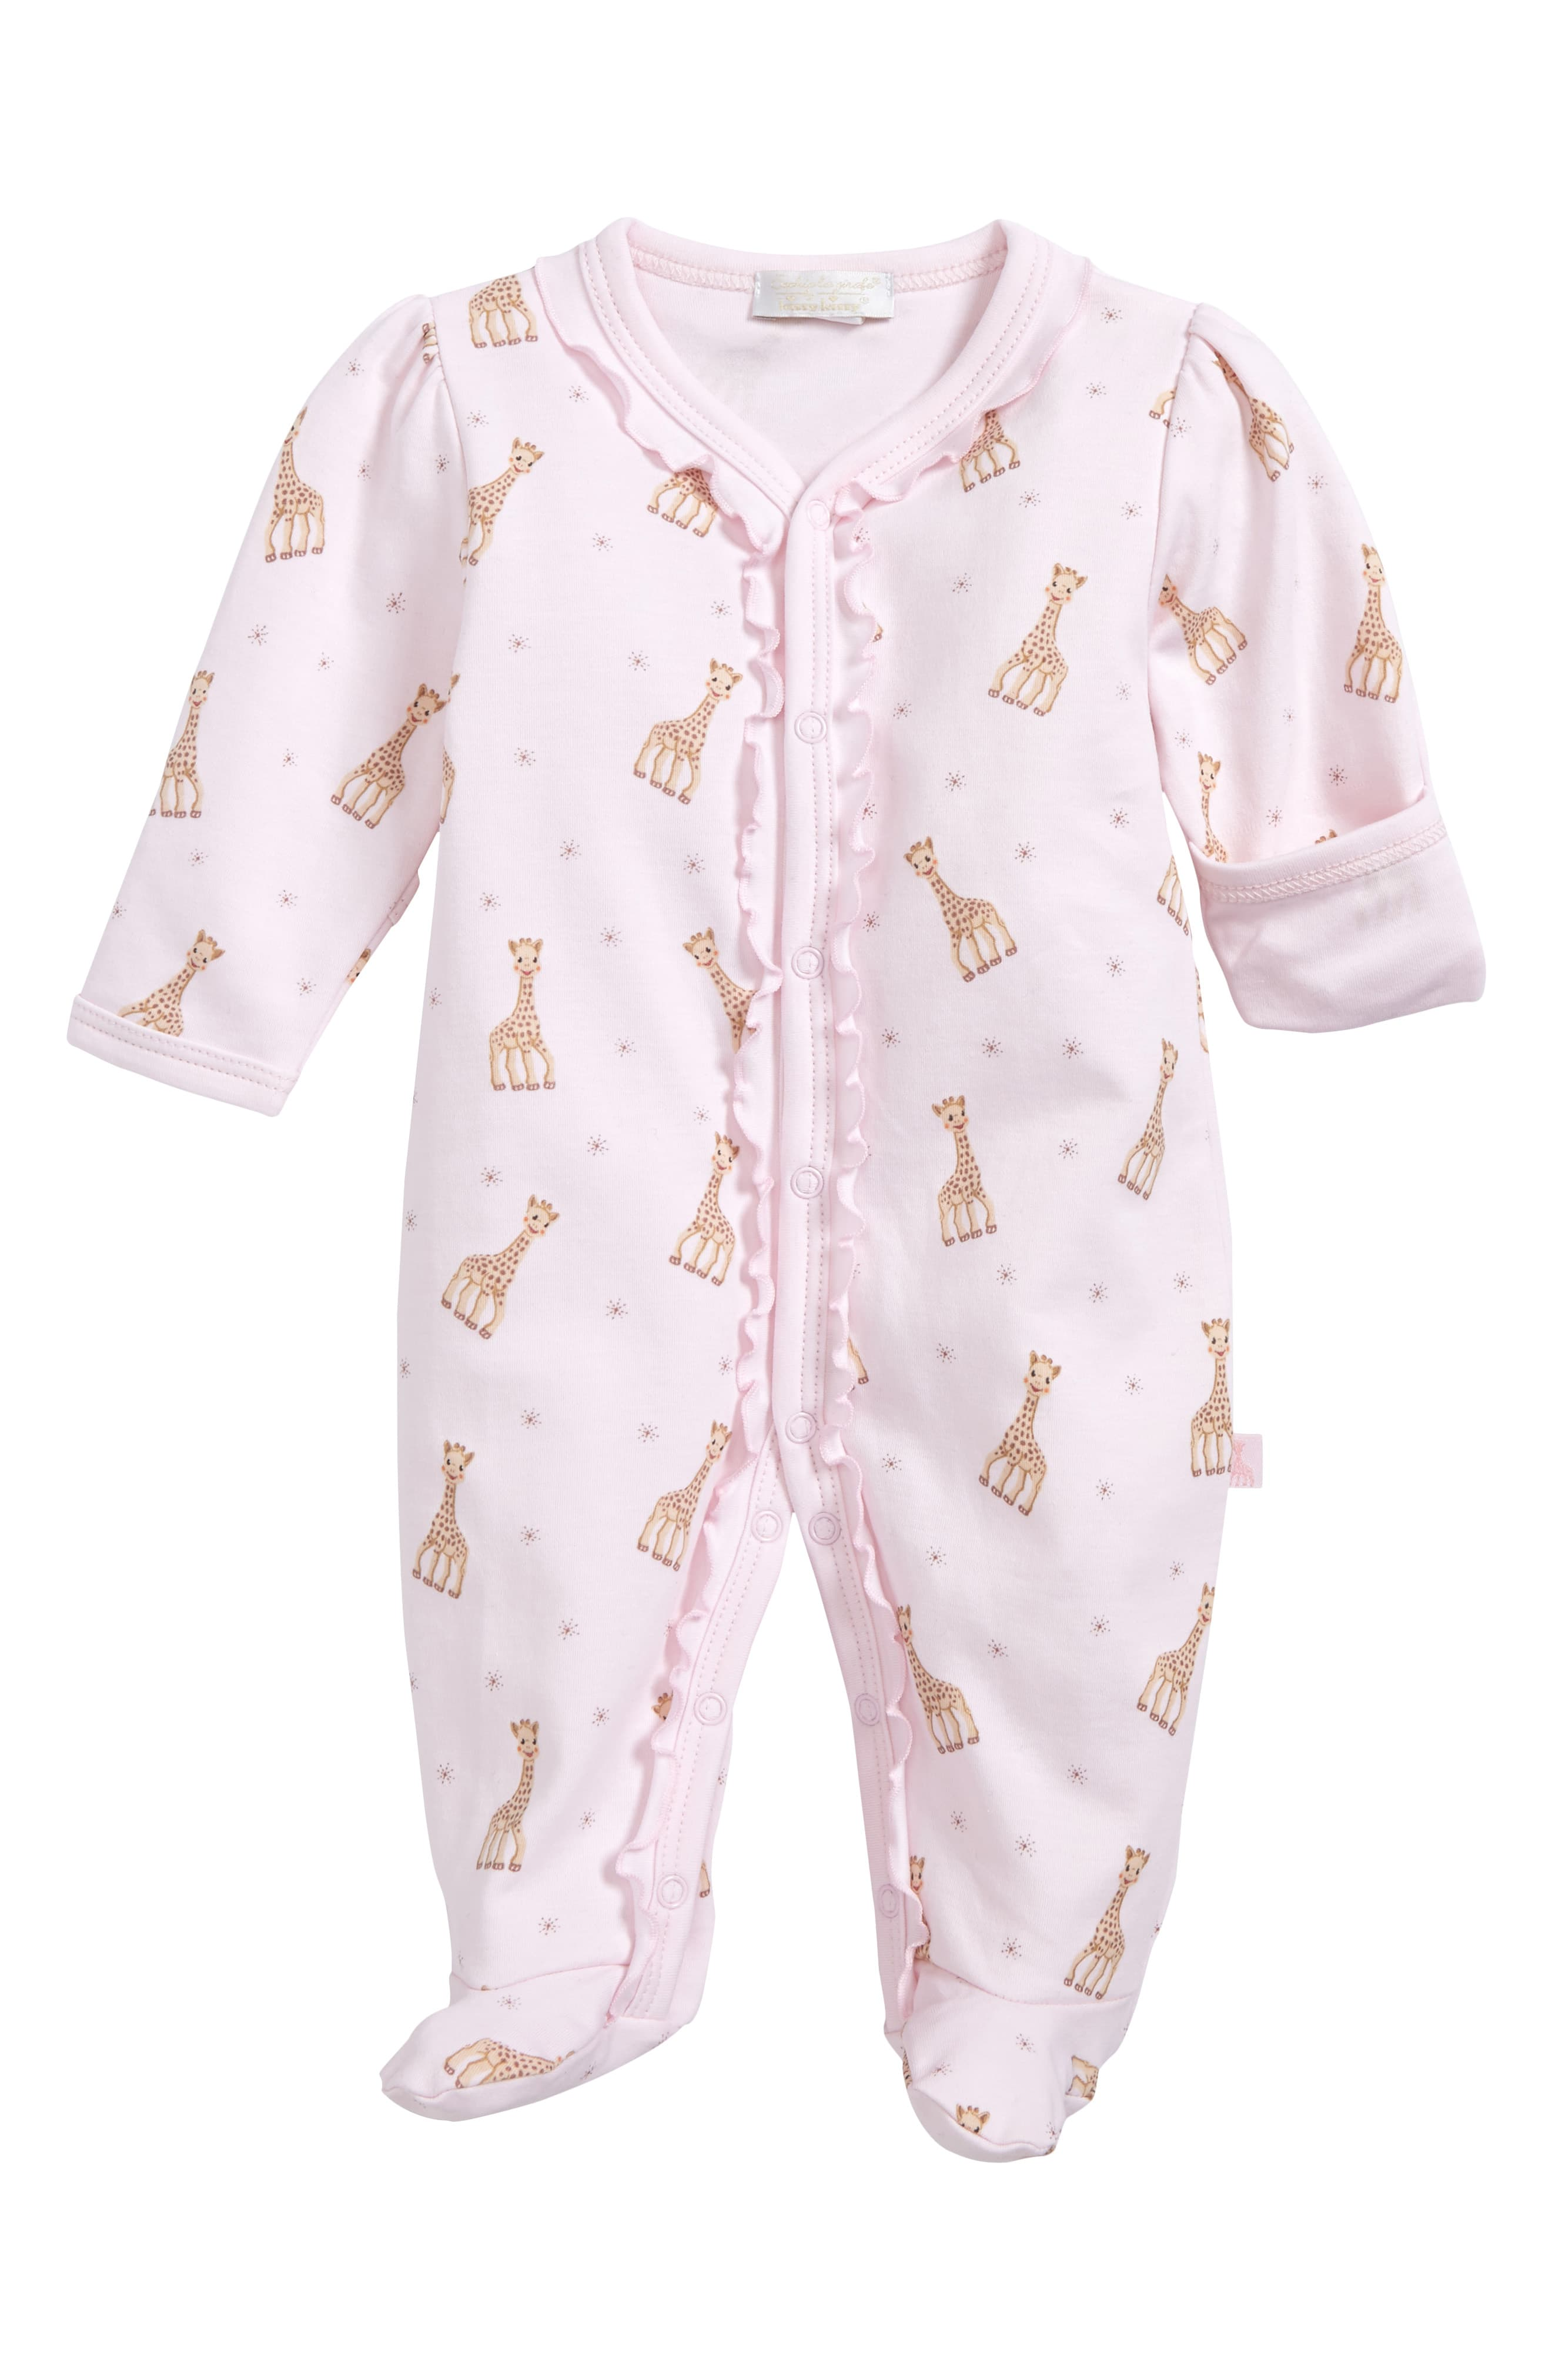 Bodysuits Kimonos and Pajamas for Toddlers Twin Baby Outfits for Girls Side Snap Onesies Footies